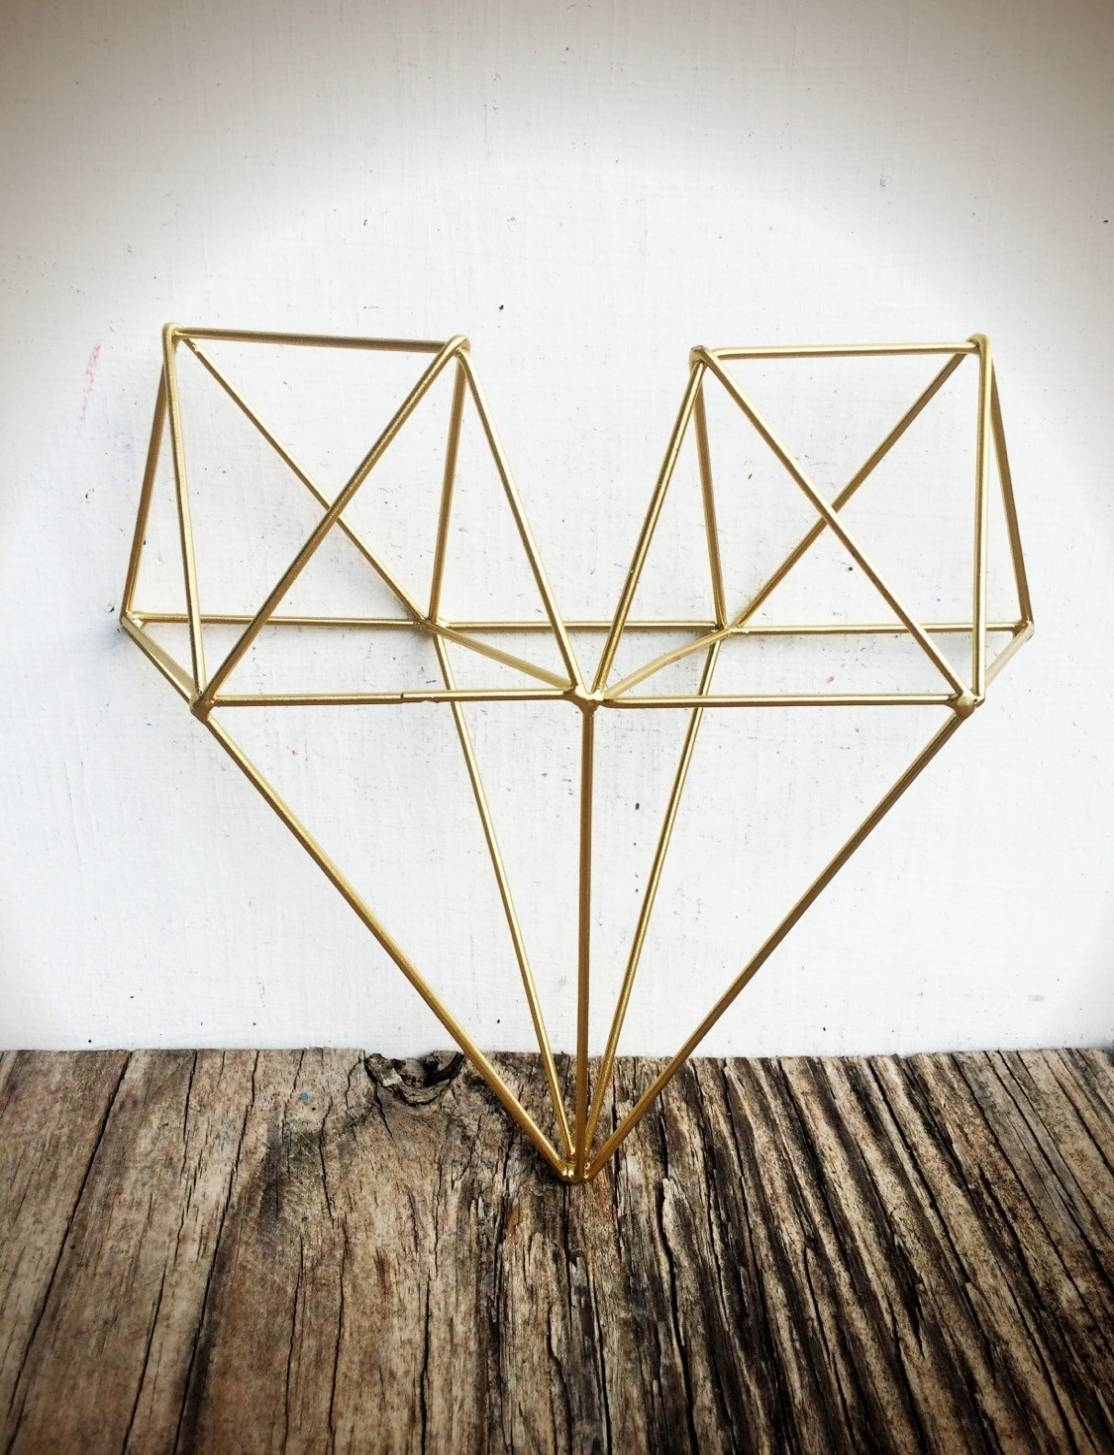 Peachy Ideas Geometric Metal Wall Art Black Abstract Nova Etsy My Intended For Most Up To Date Abstract Geometric Metal Wall Art (View 12 of 20)